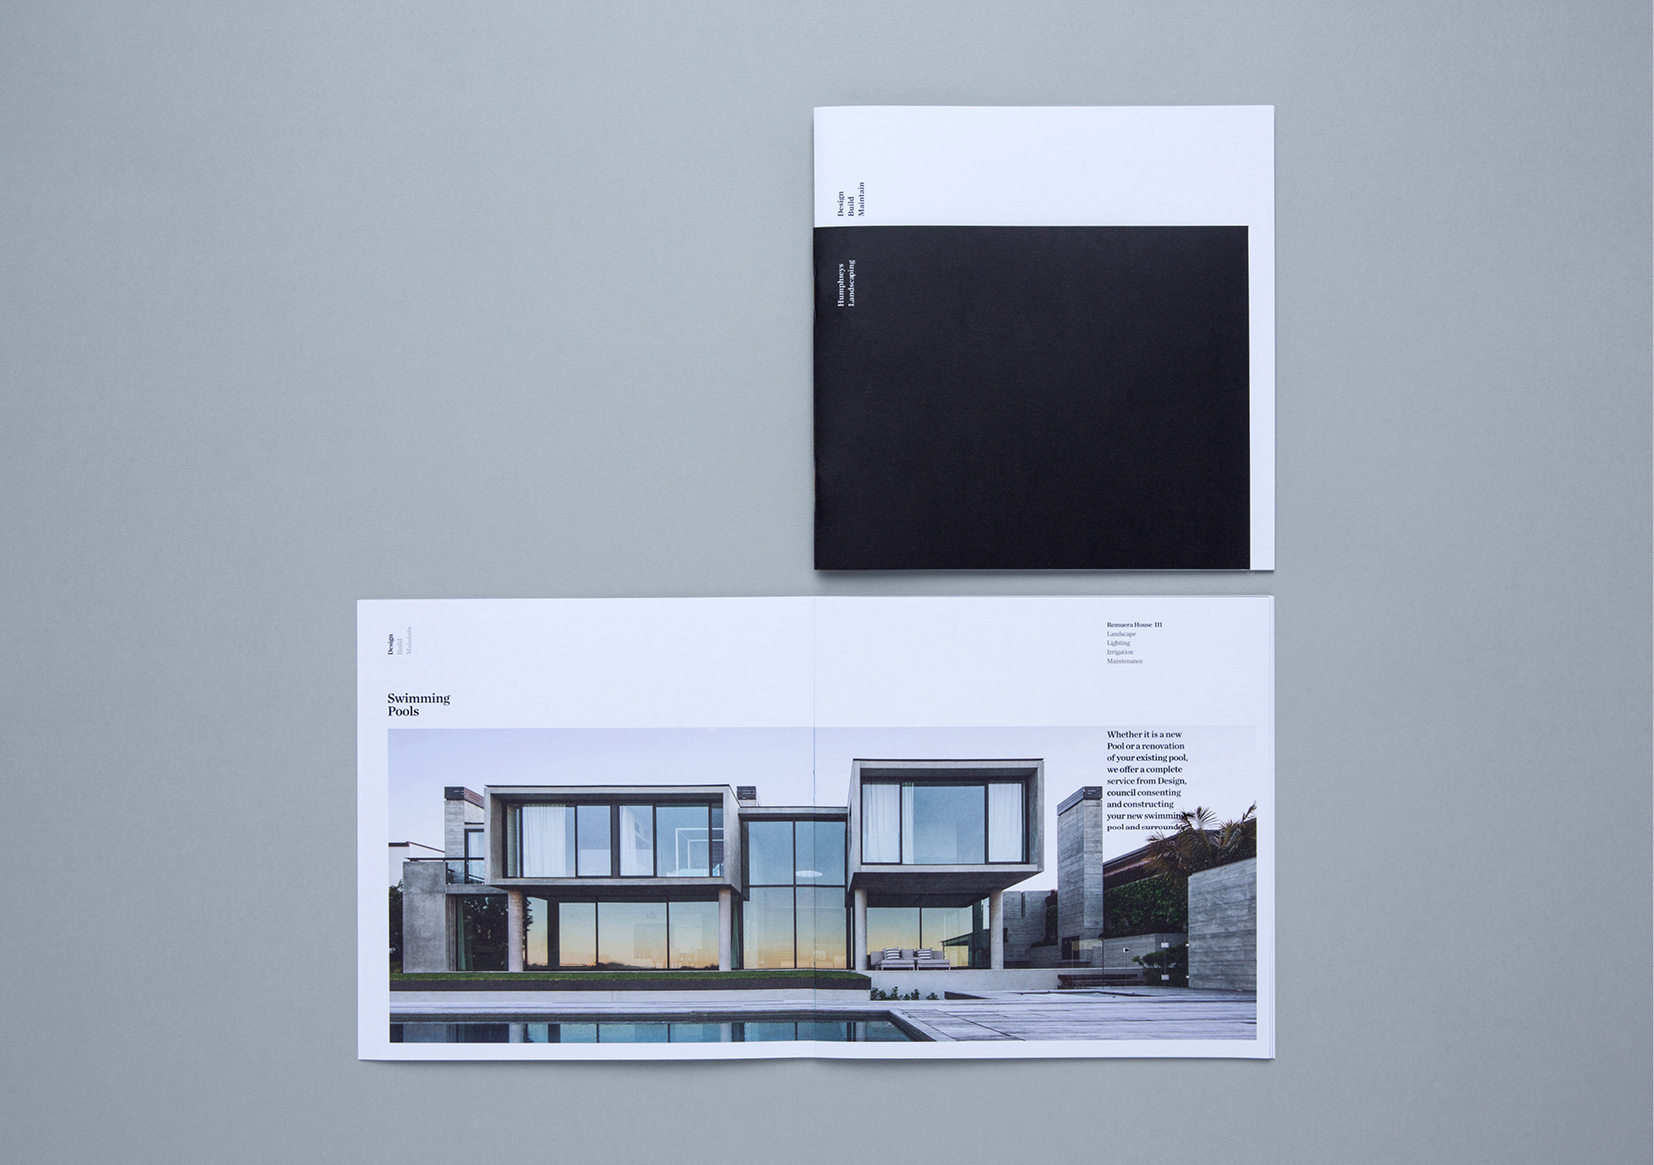 Humphreys Landscaping Brochure – black and white cover and spread showing modernist home and garden